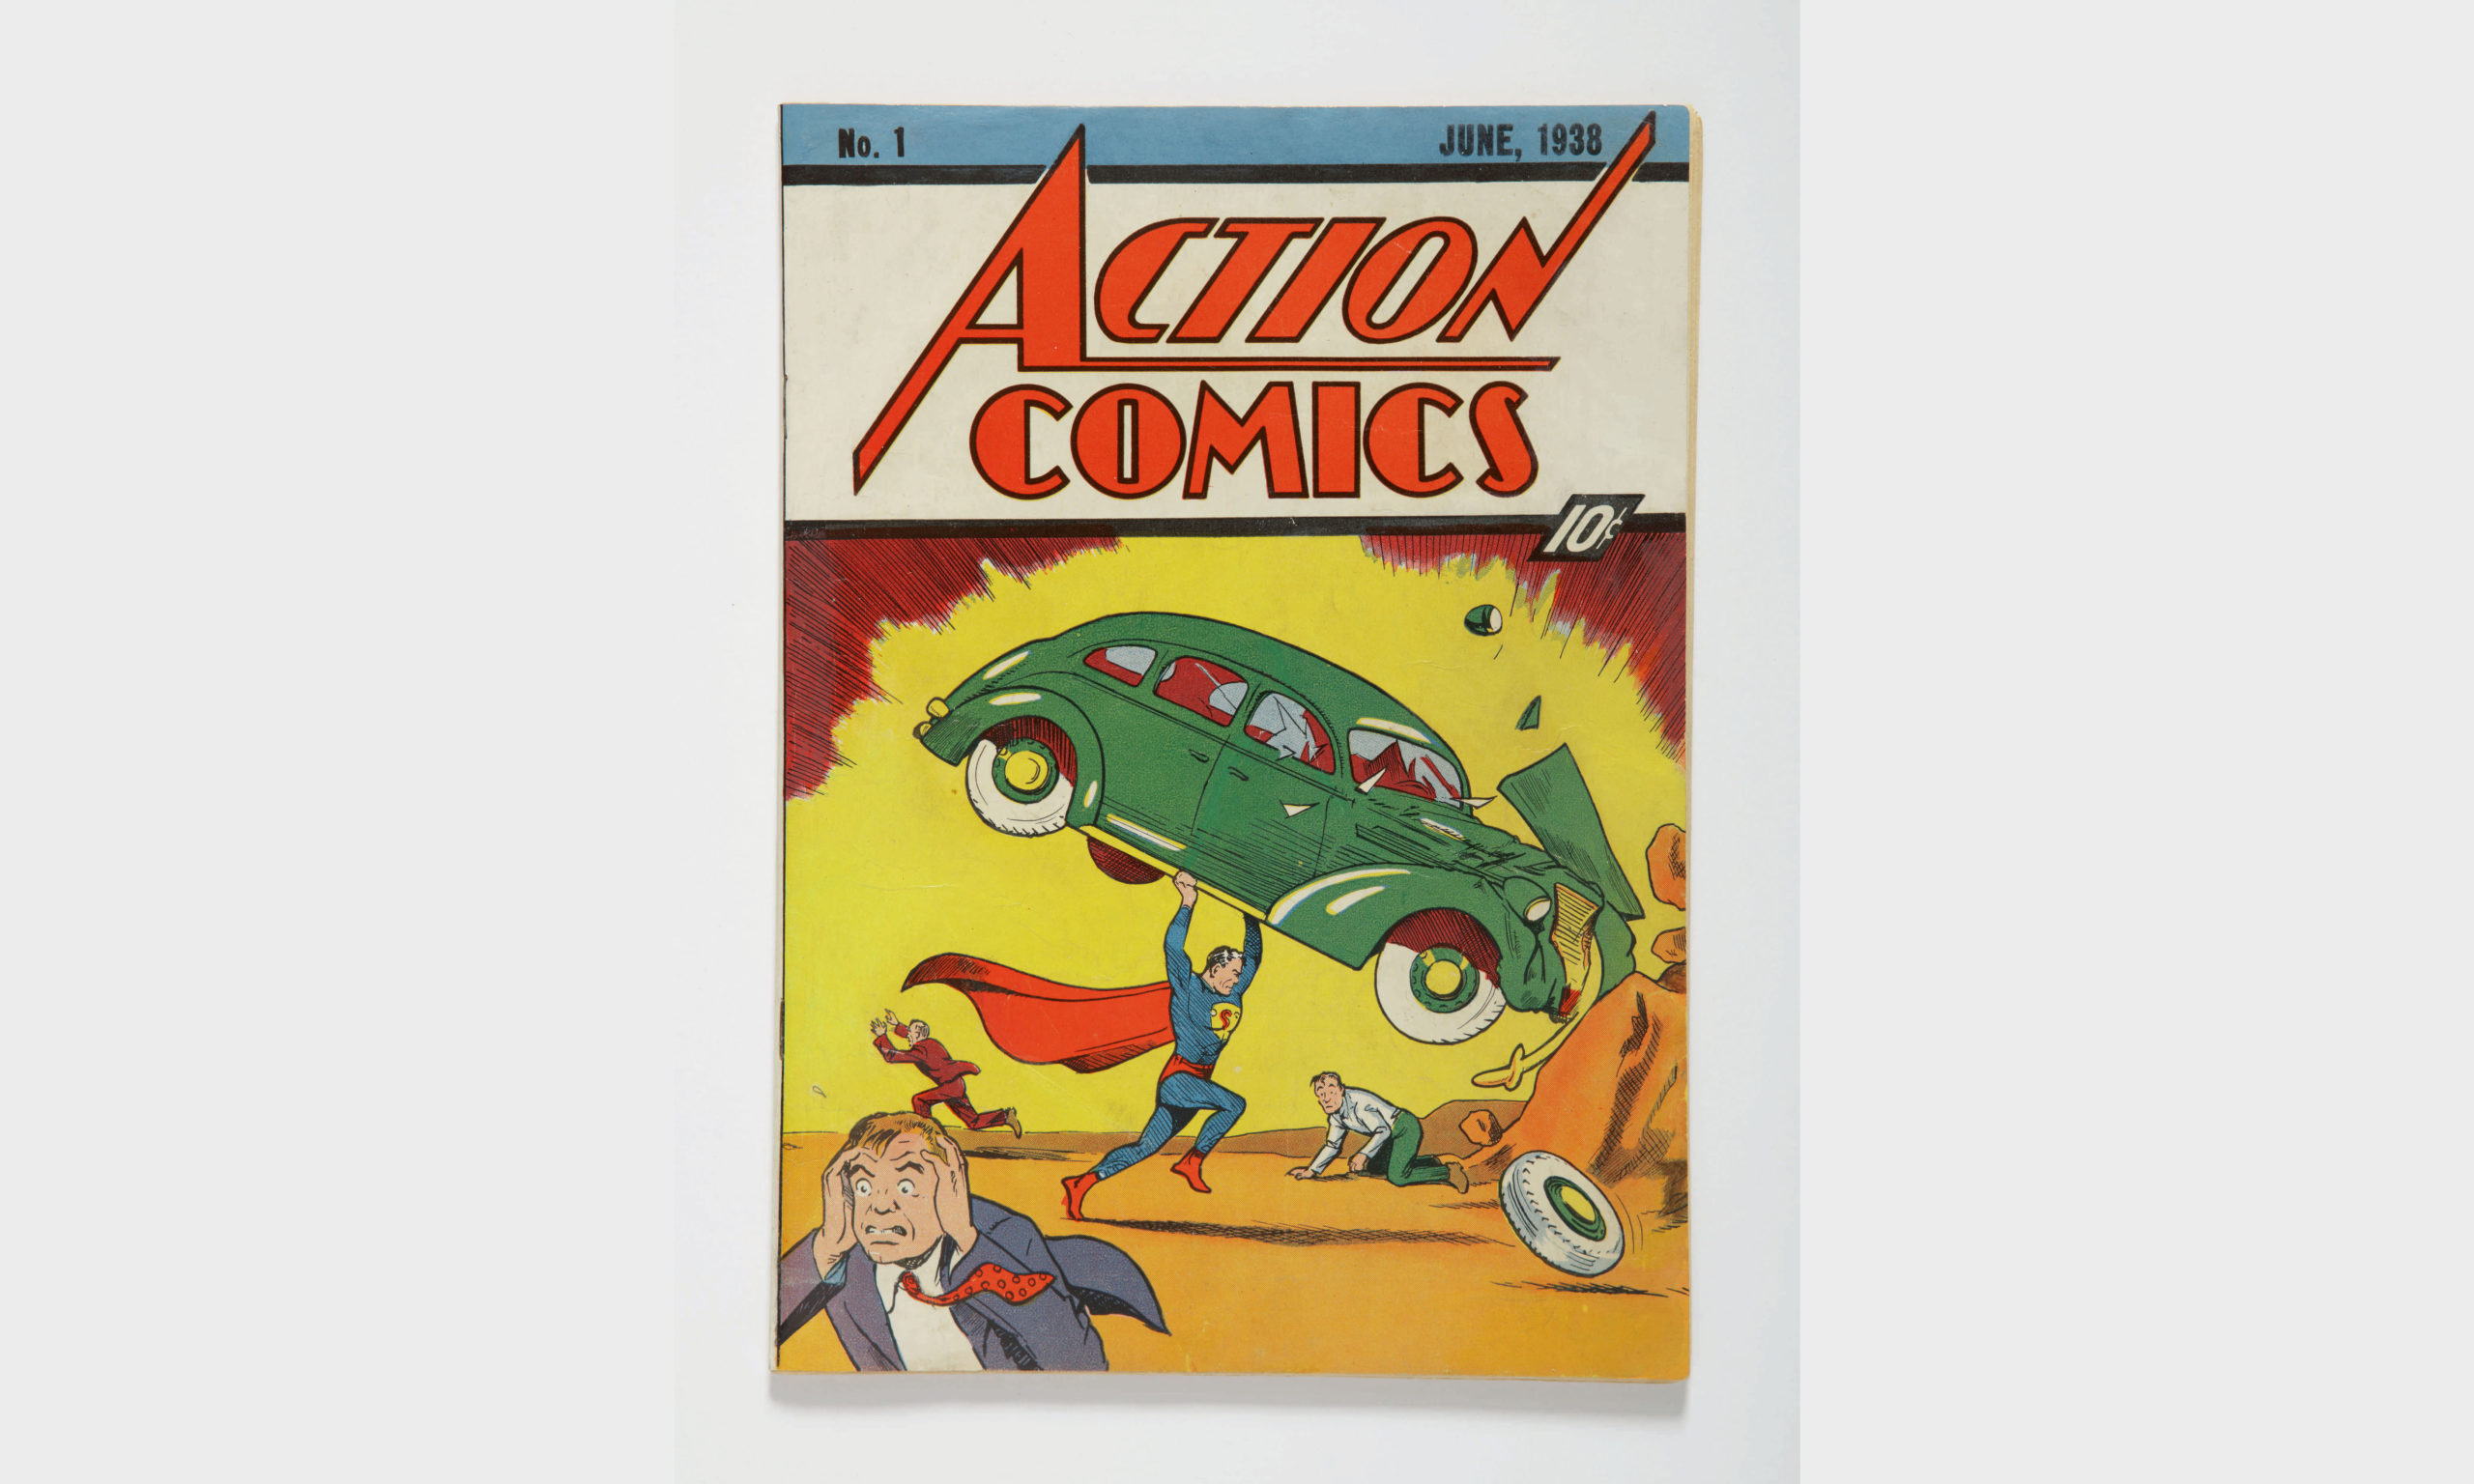 Action Comics no.1, the first appearance of Superman, June 1938